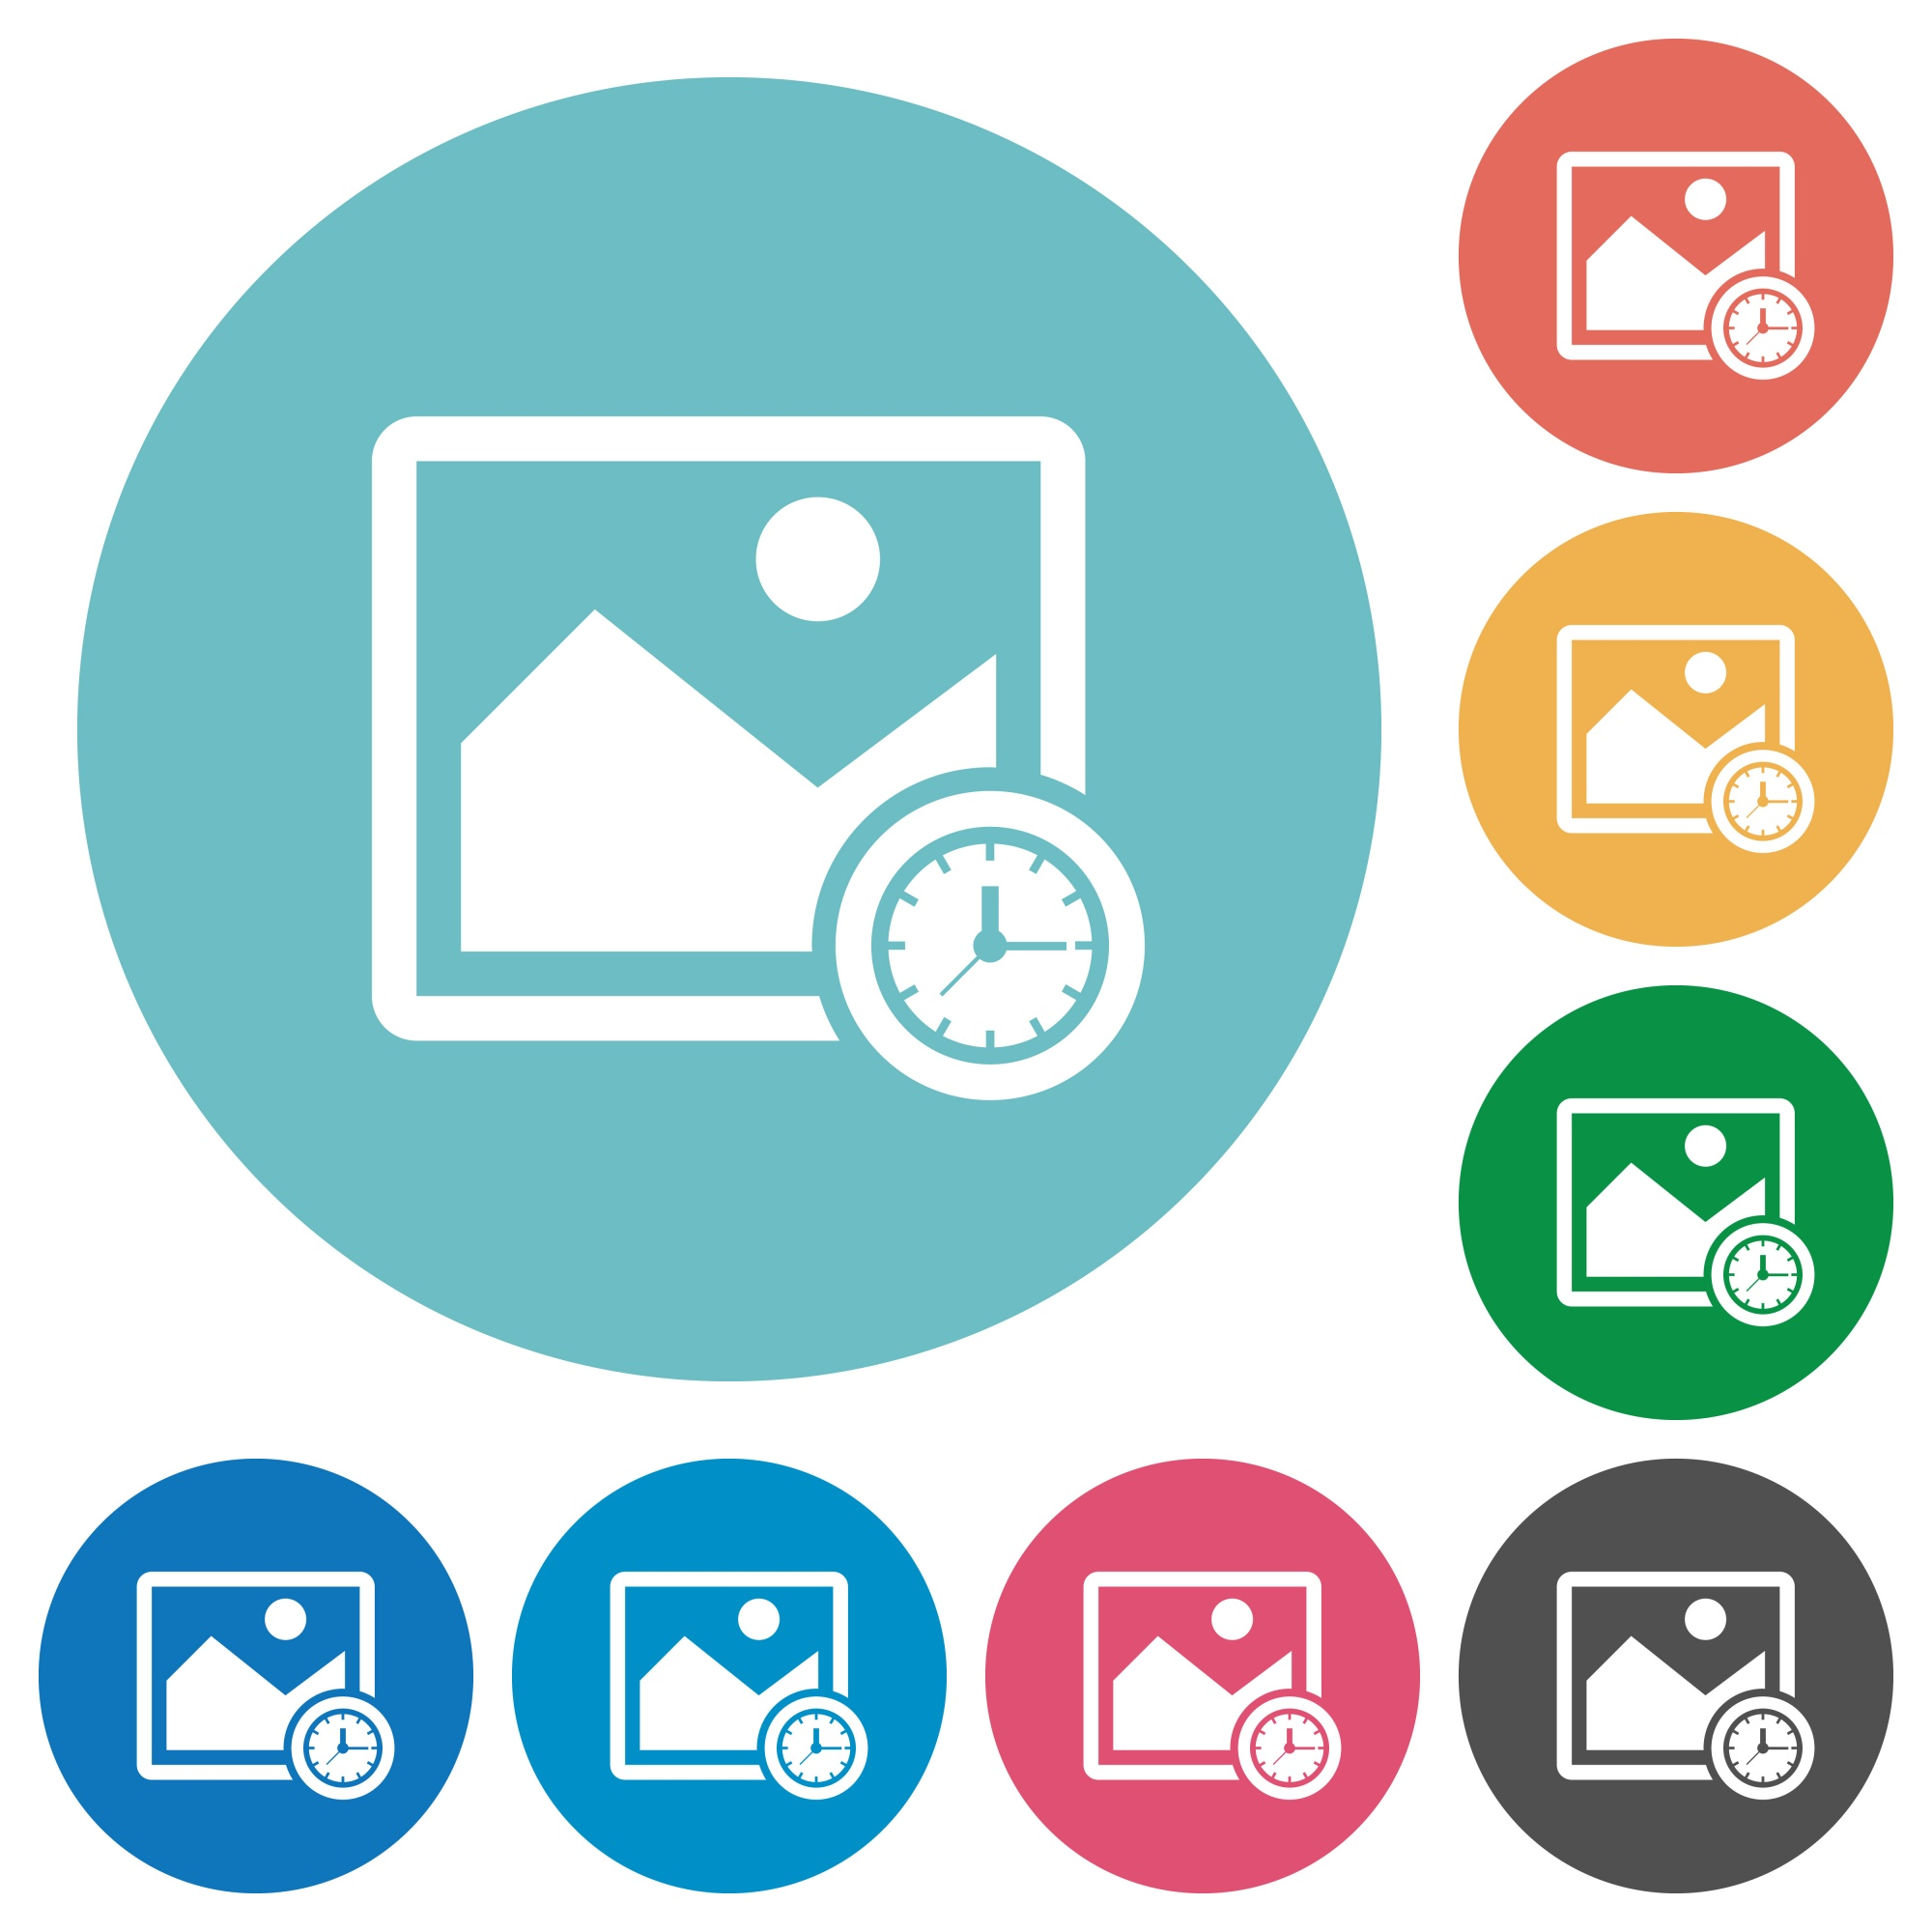 Image time flat white icons on round color backgrounds - Free image